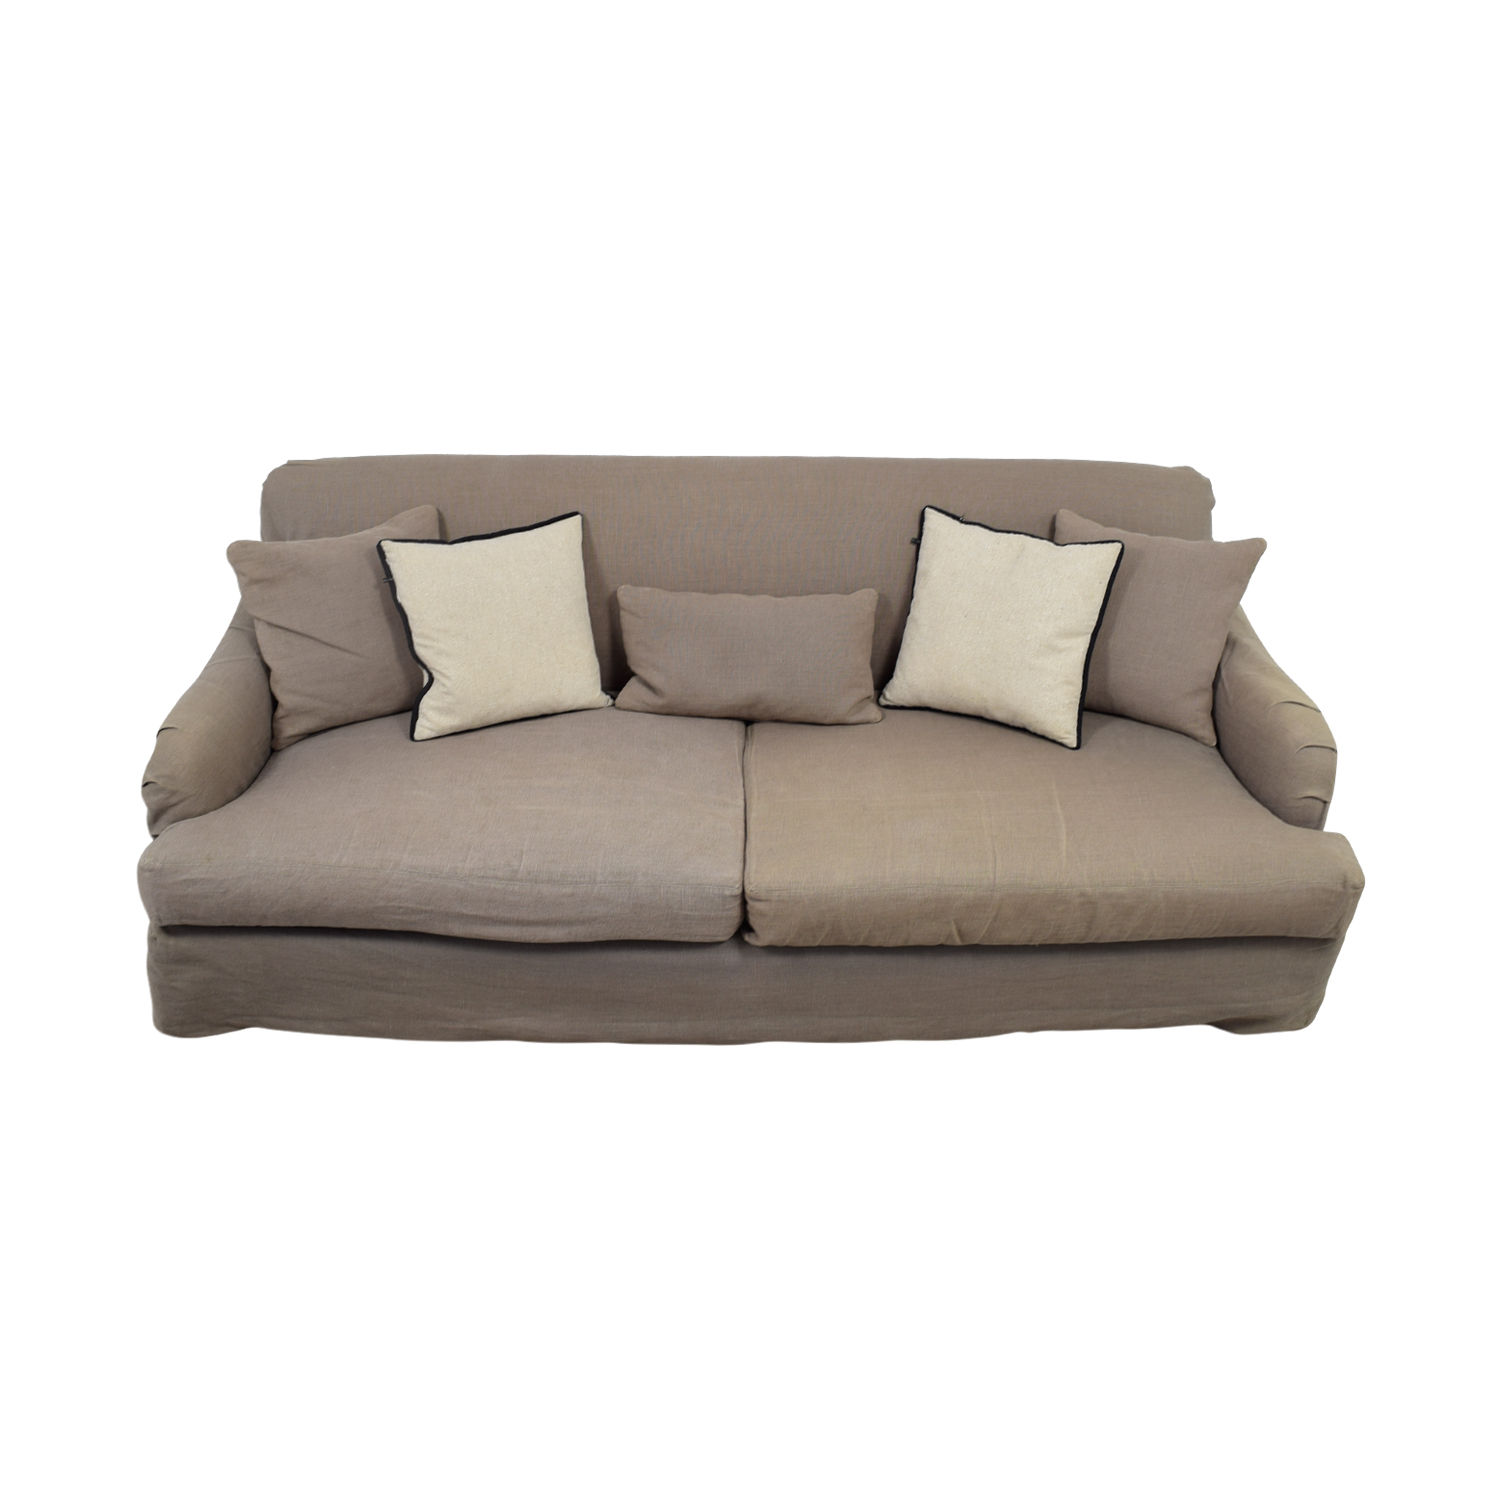 furniture loveseats industries brown buy chaise under albany pillows sofas sectionals loveseat with used sectional